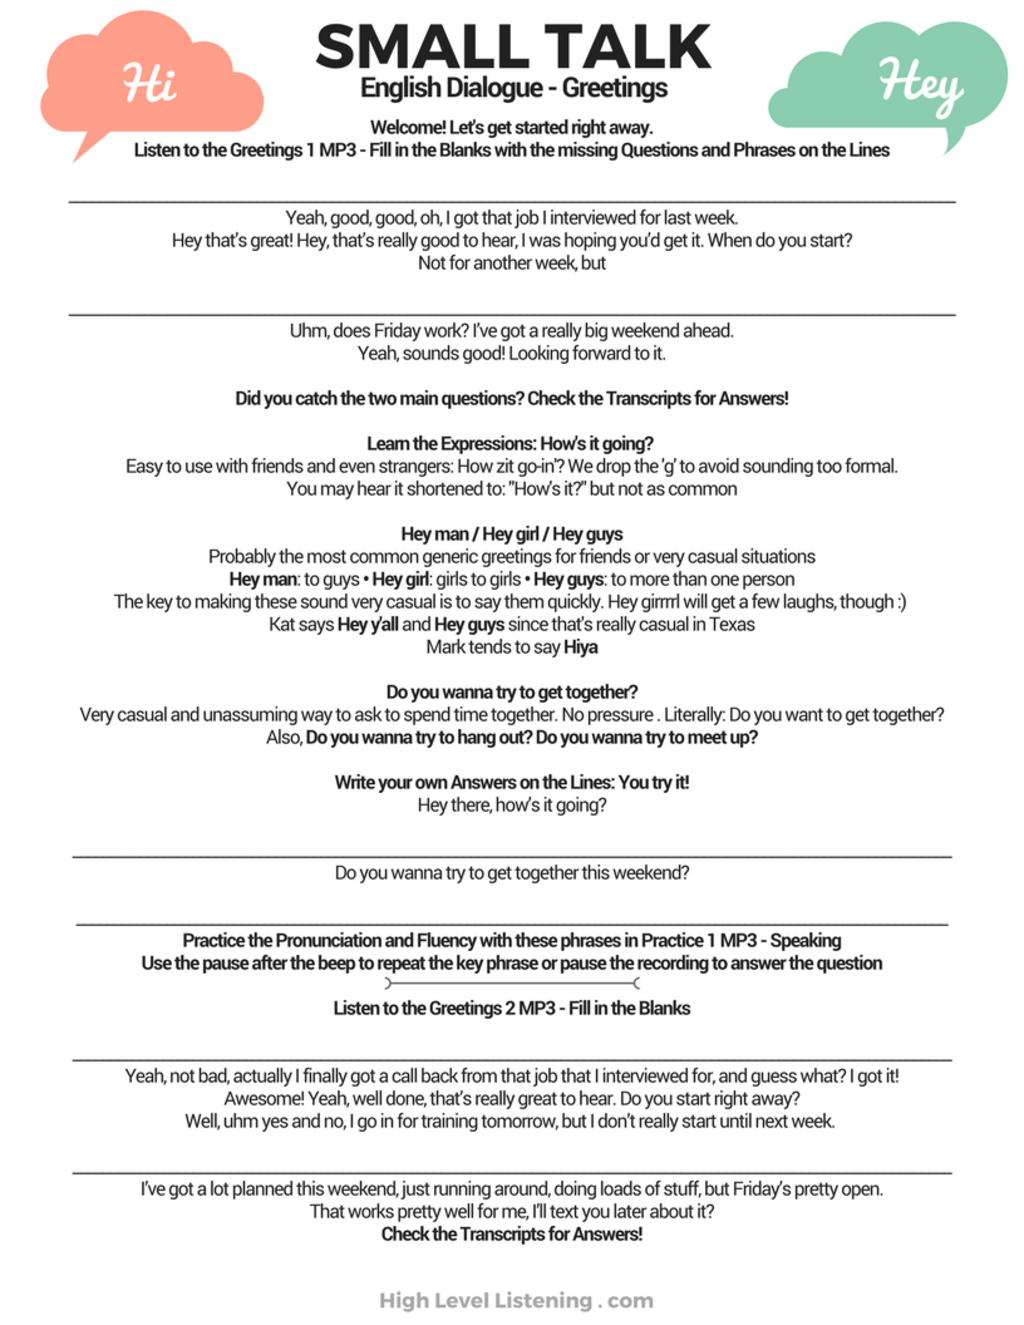 Advanced english small talk greetings worksheets and dialogues with advanced english small talk greetings worksheets and dialogues with mp3s high level listening m4hsunfo